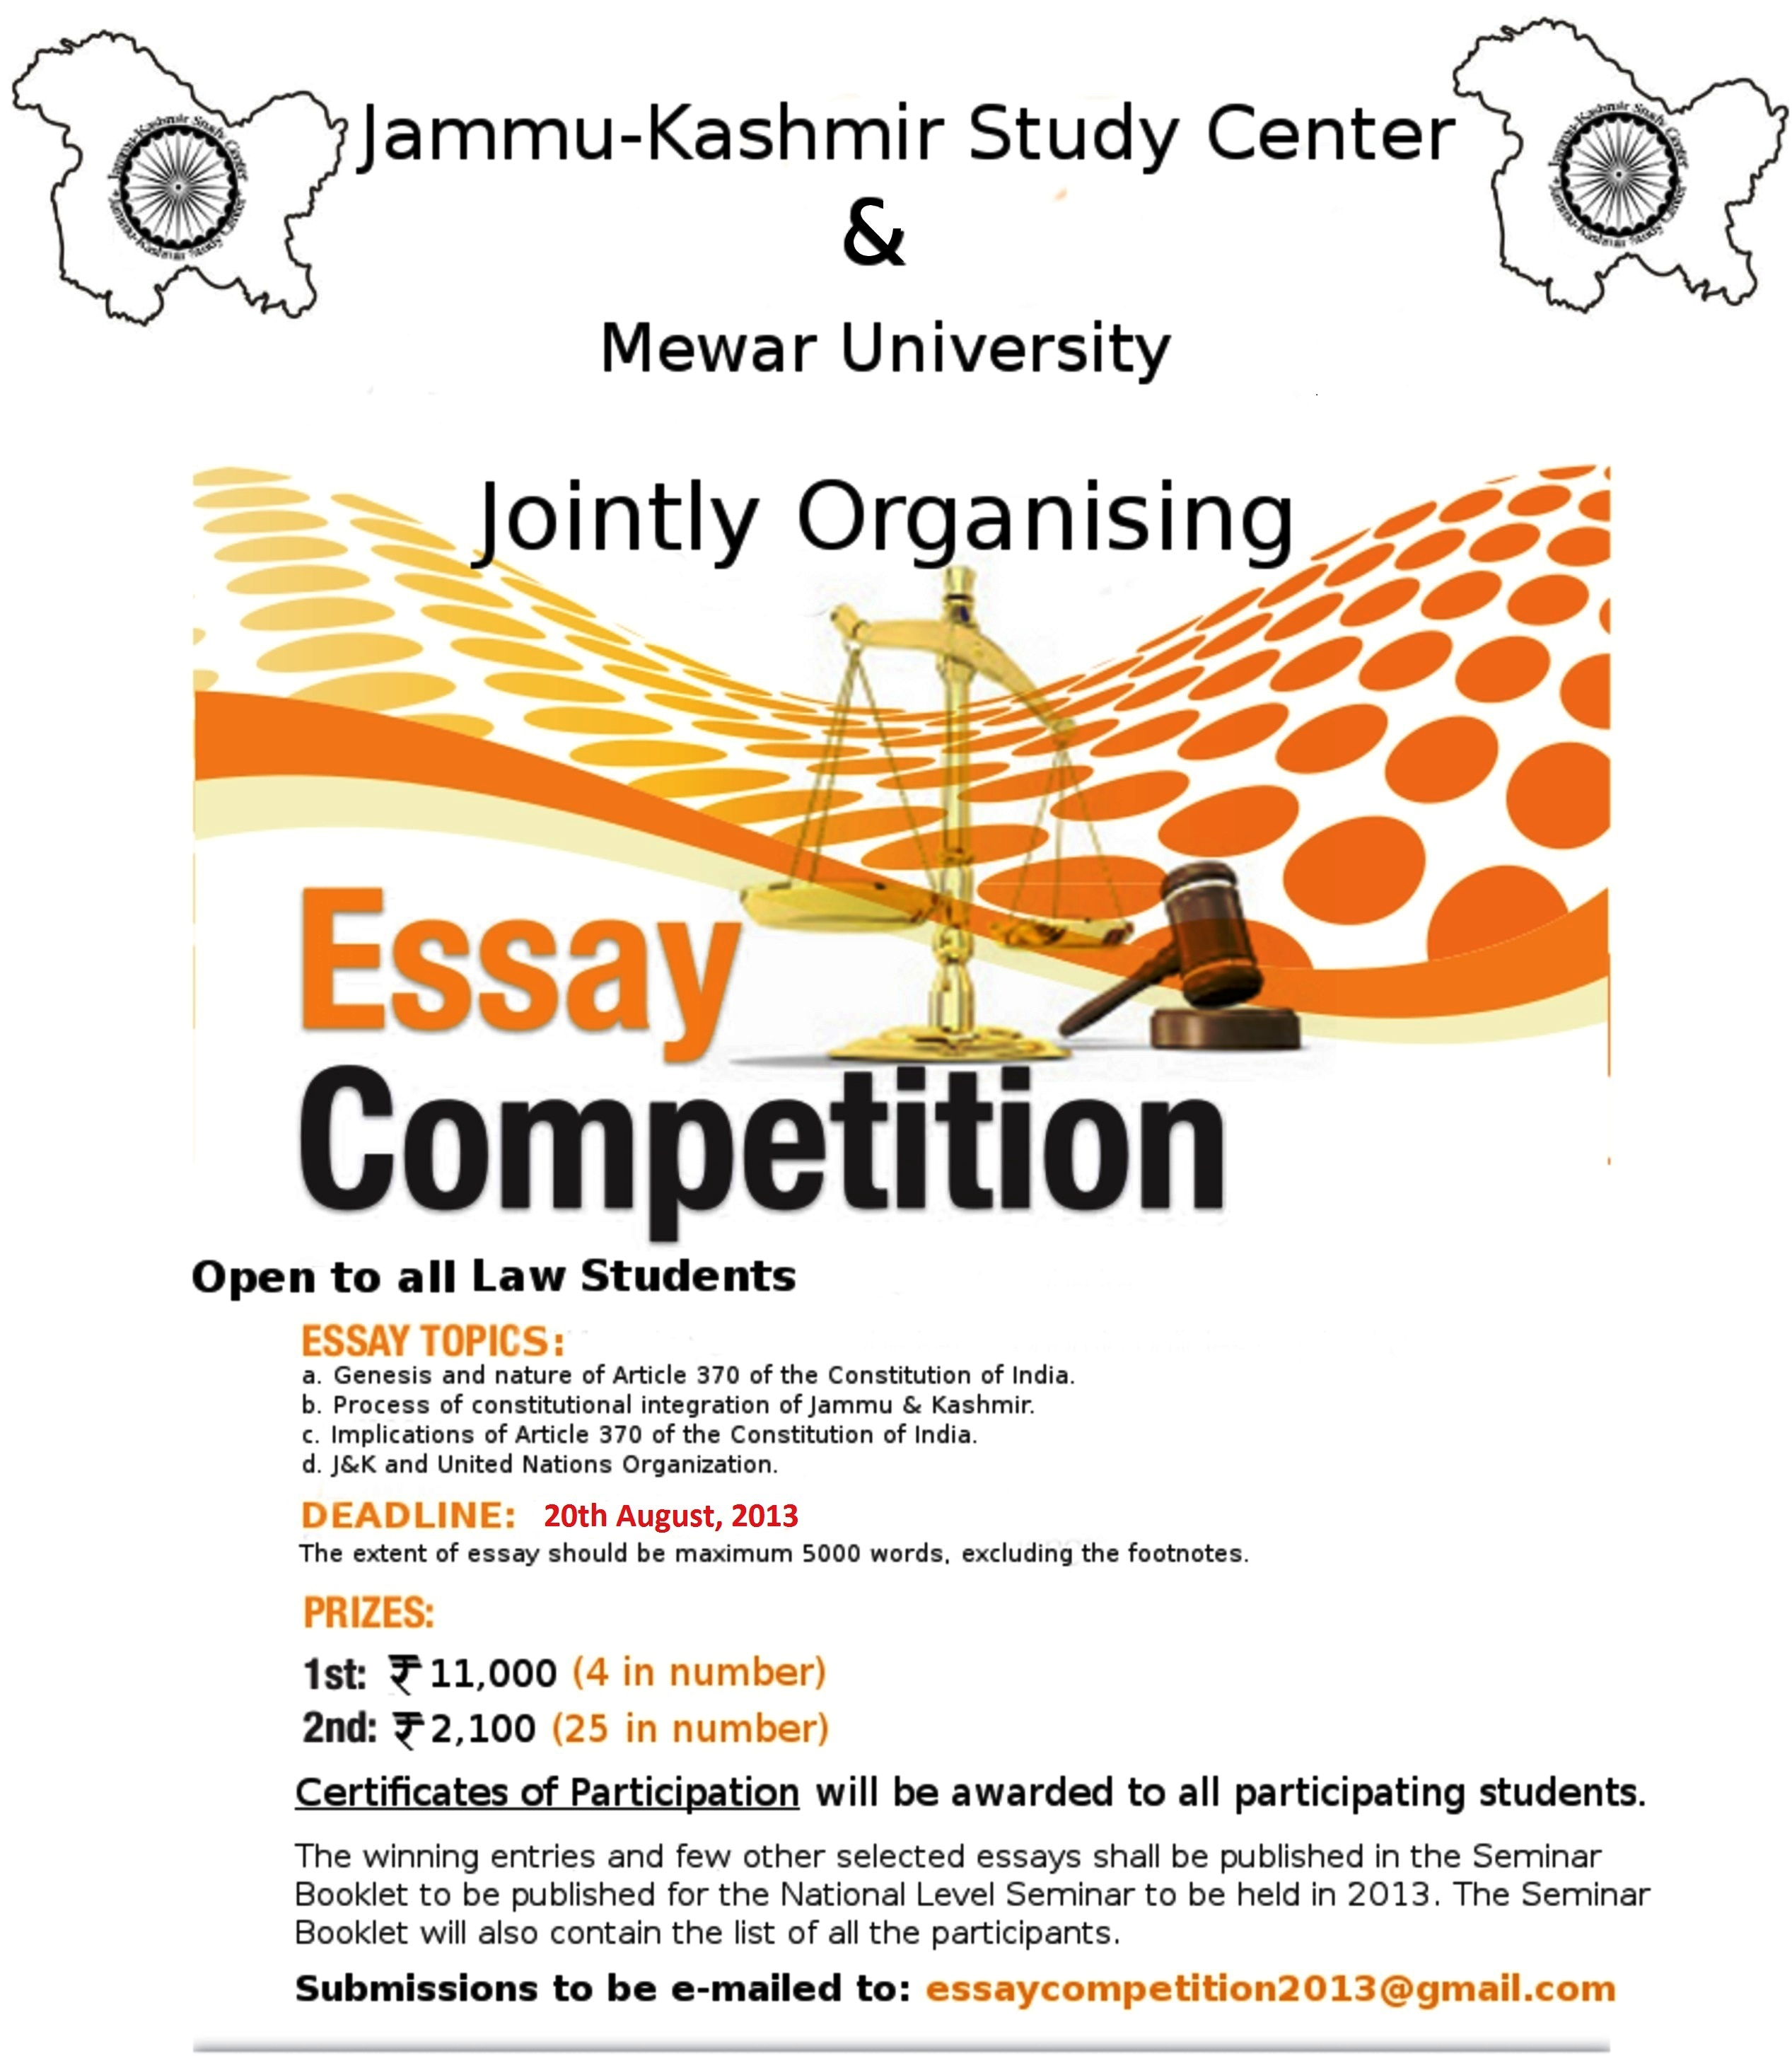 Entries open for WiMAC essay competition